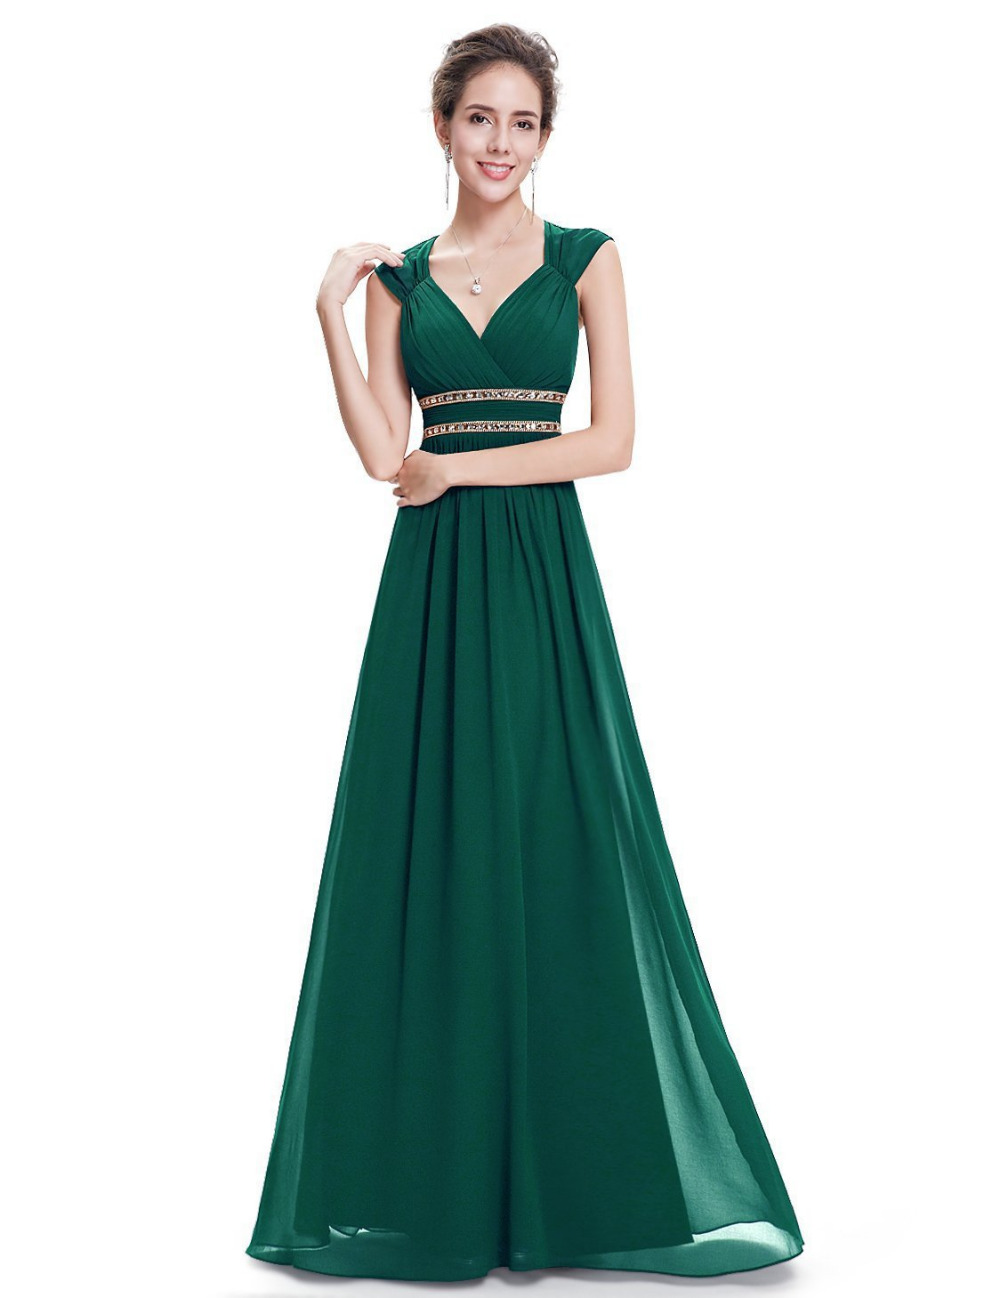 Hand Make Mother and Daughter Clothes Sleeveless Women Evening Dress For Party and Evening Gowns A-Line Prom Dresses For Women satin mother and daughter clothes sleeveless women evening dress for party and vestido festa a line prom dresses for women